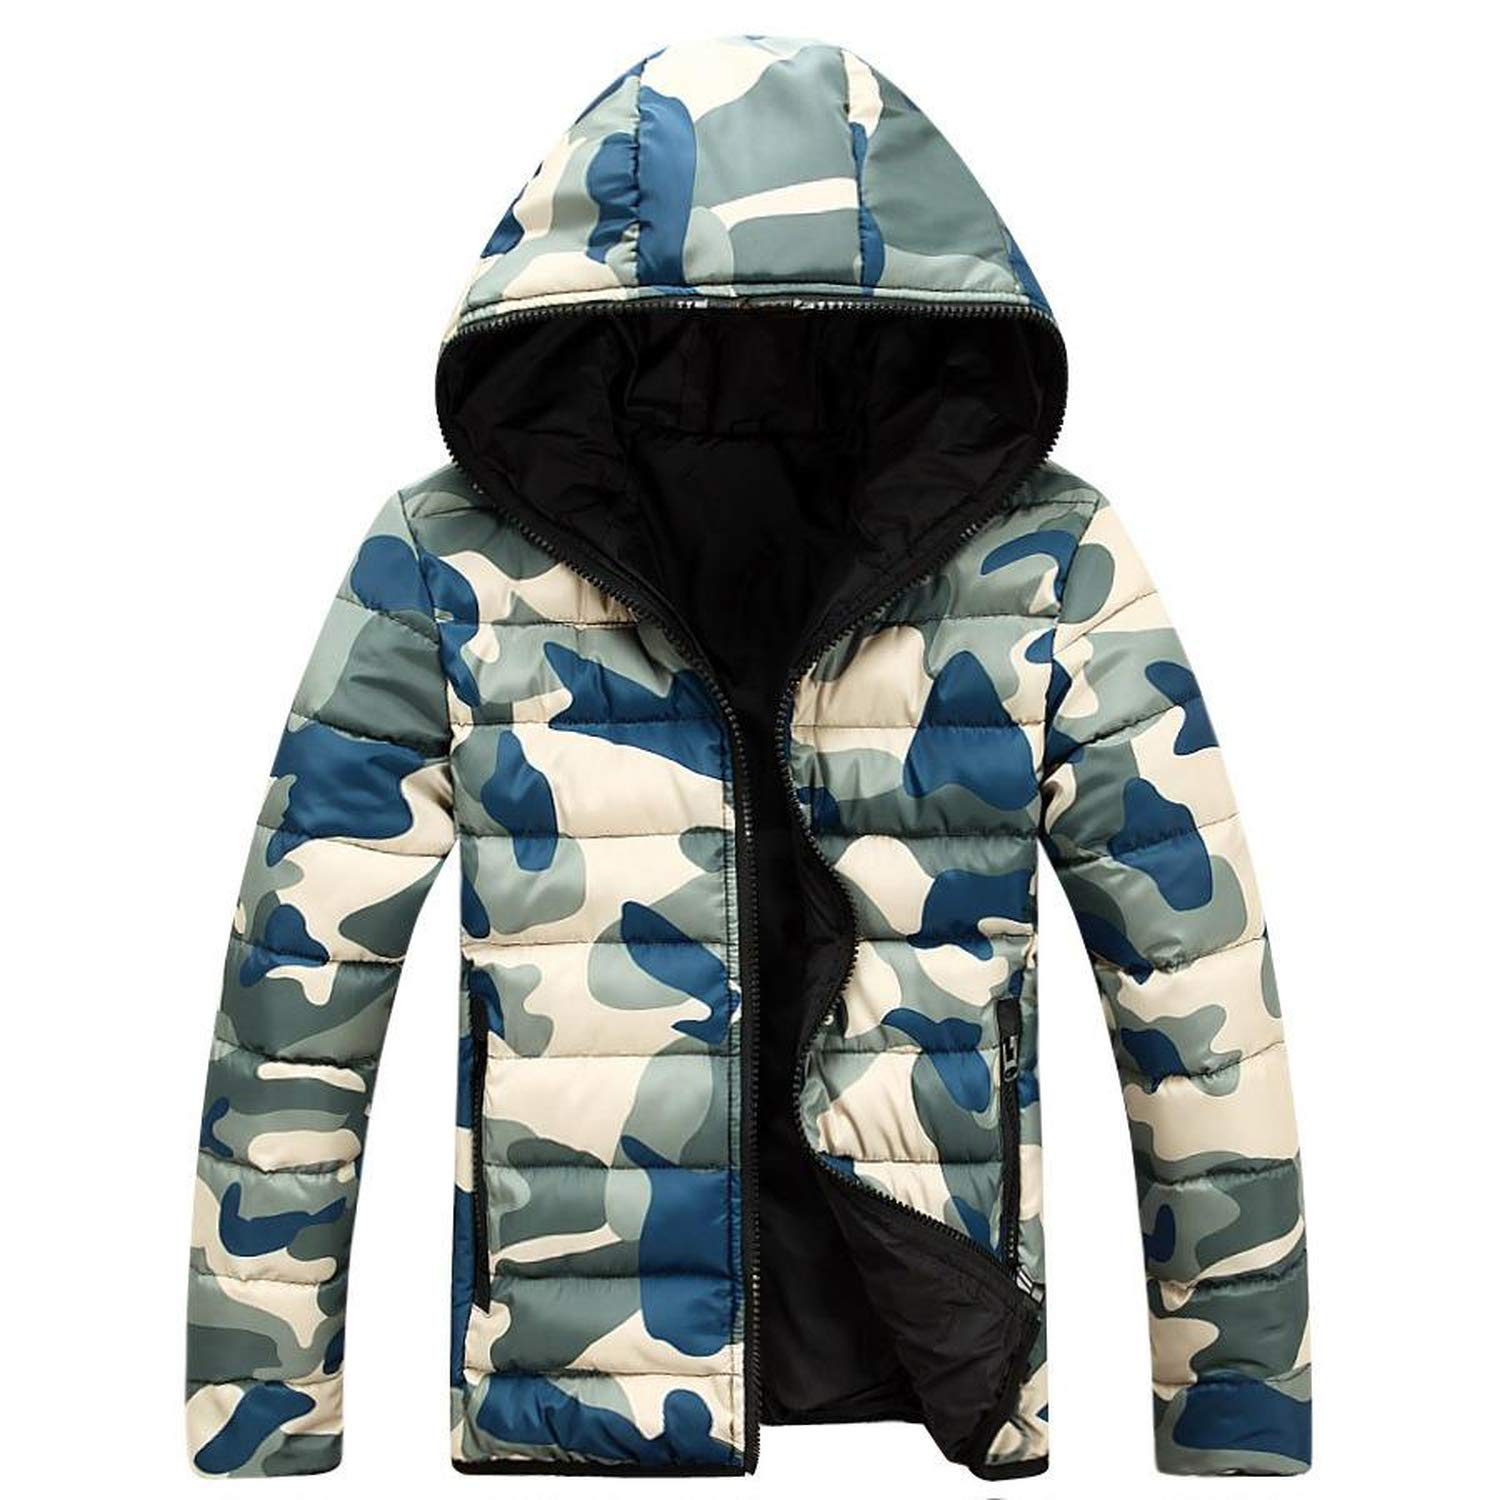 Amazon.com: 87 clothes Winter Jacket Mens Camouflage Soft ...